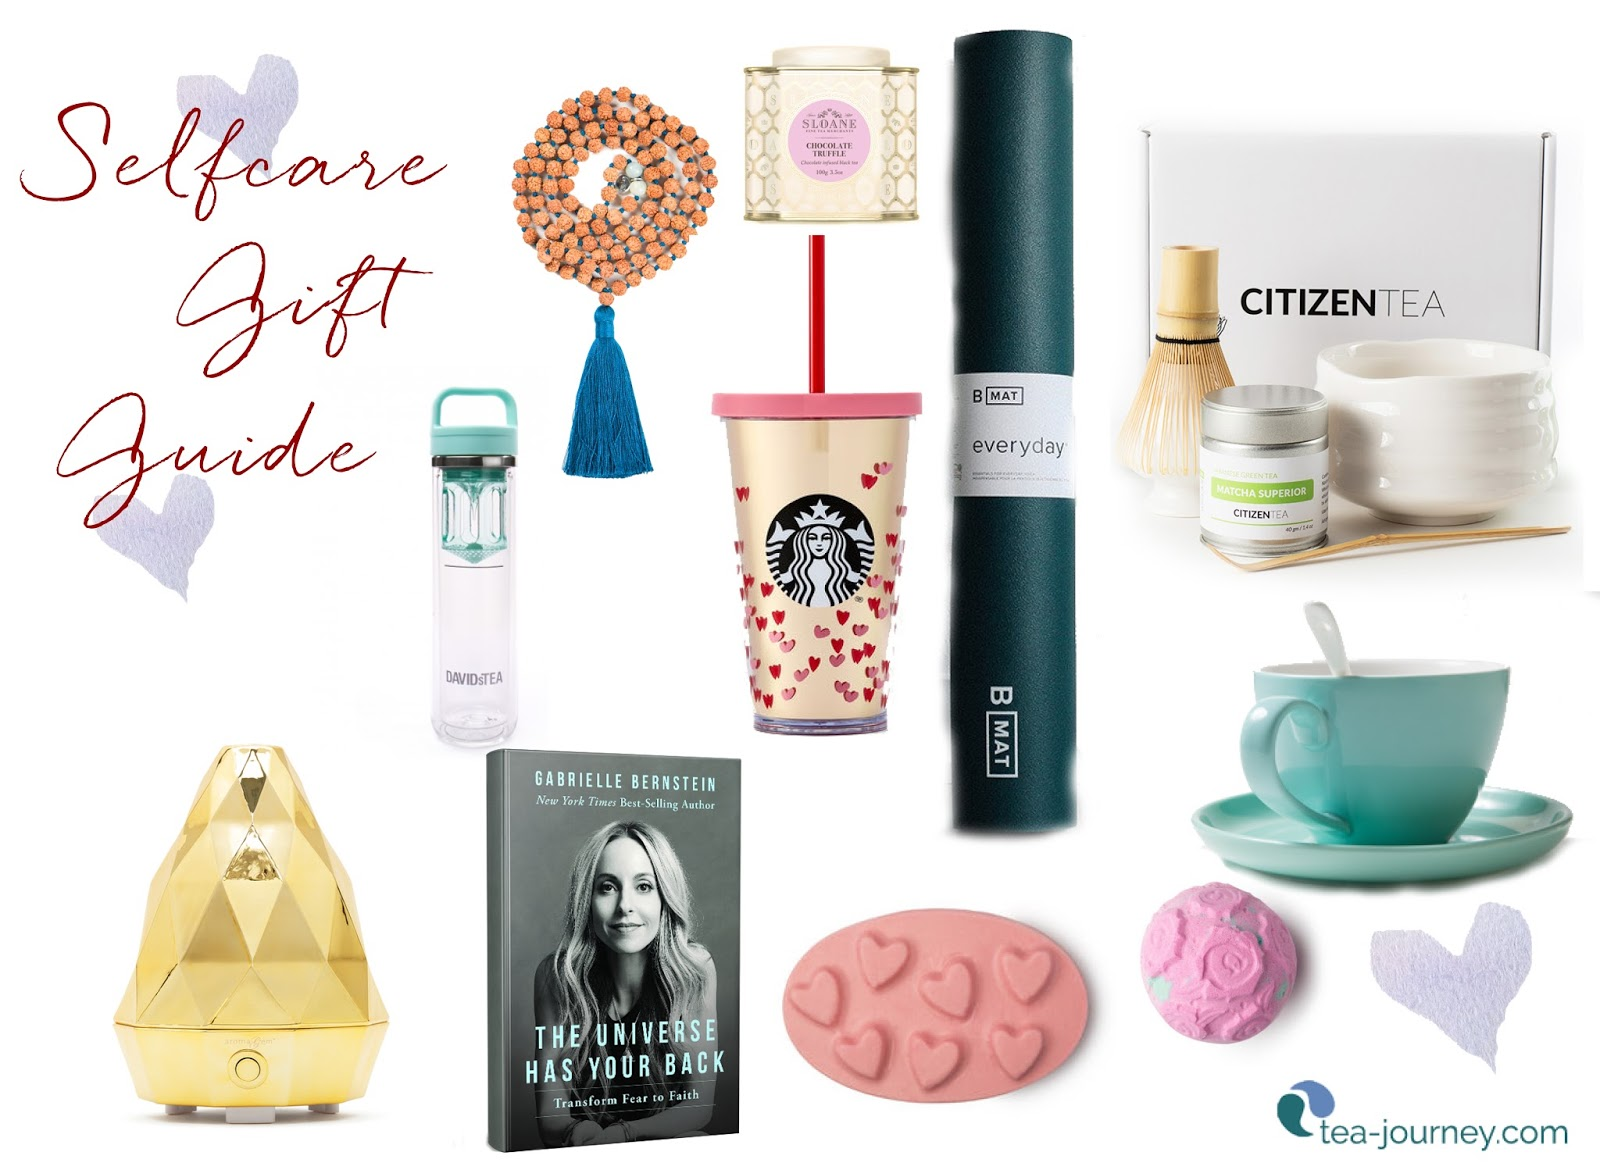 No matter what you call Feburary 14th, this is a gift guide for you. Love, Selfcare and things you can even just treat yourself to. Its all covered in this Valentines (GALentines, SIngle Awareness Day) Gift Guide.